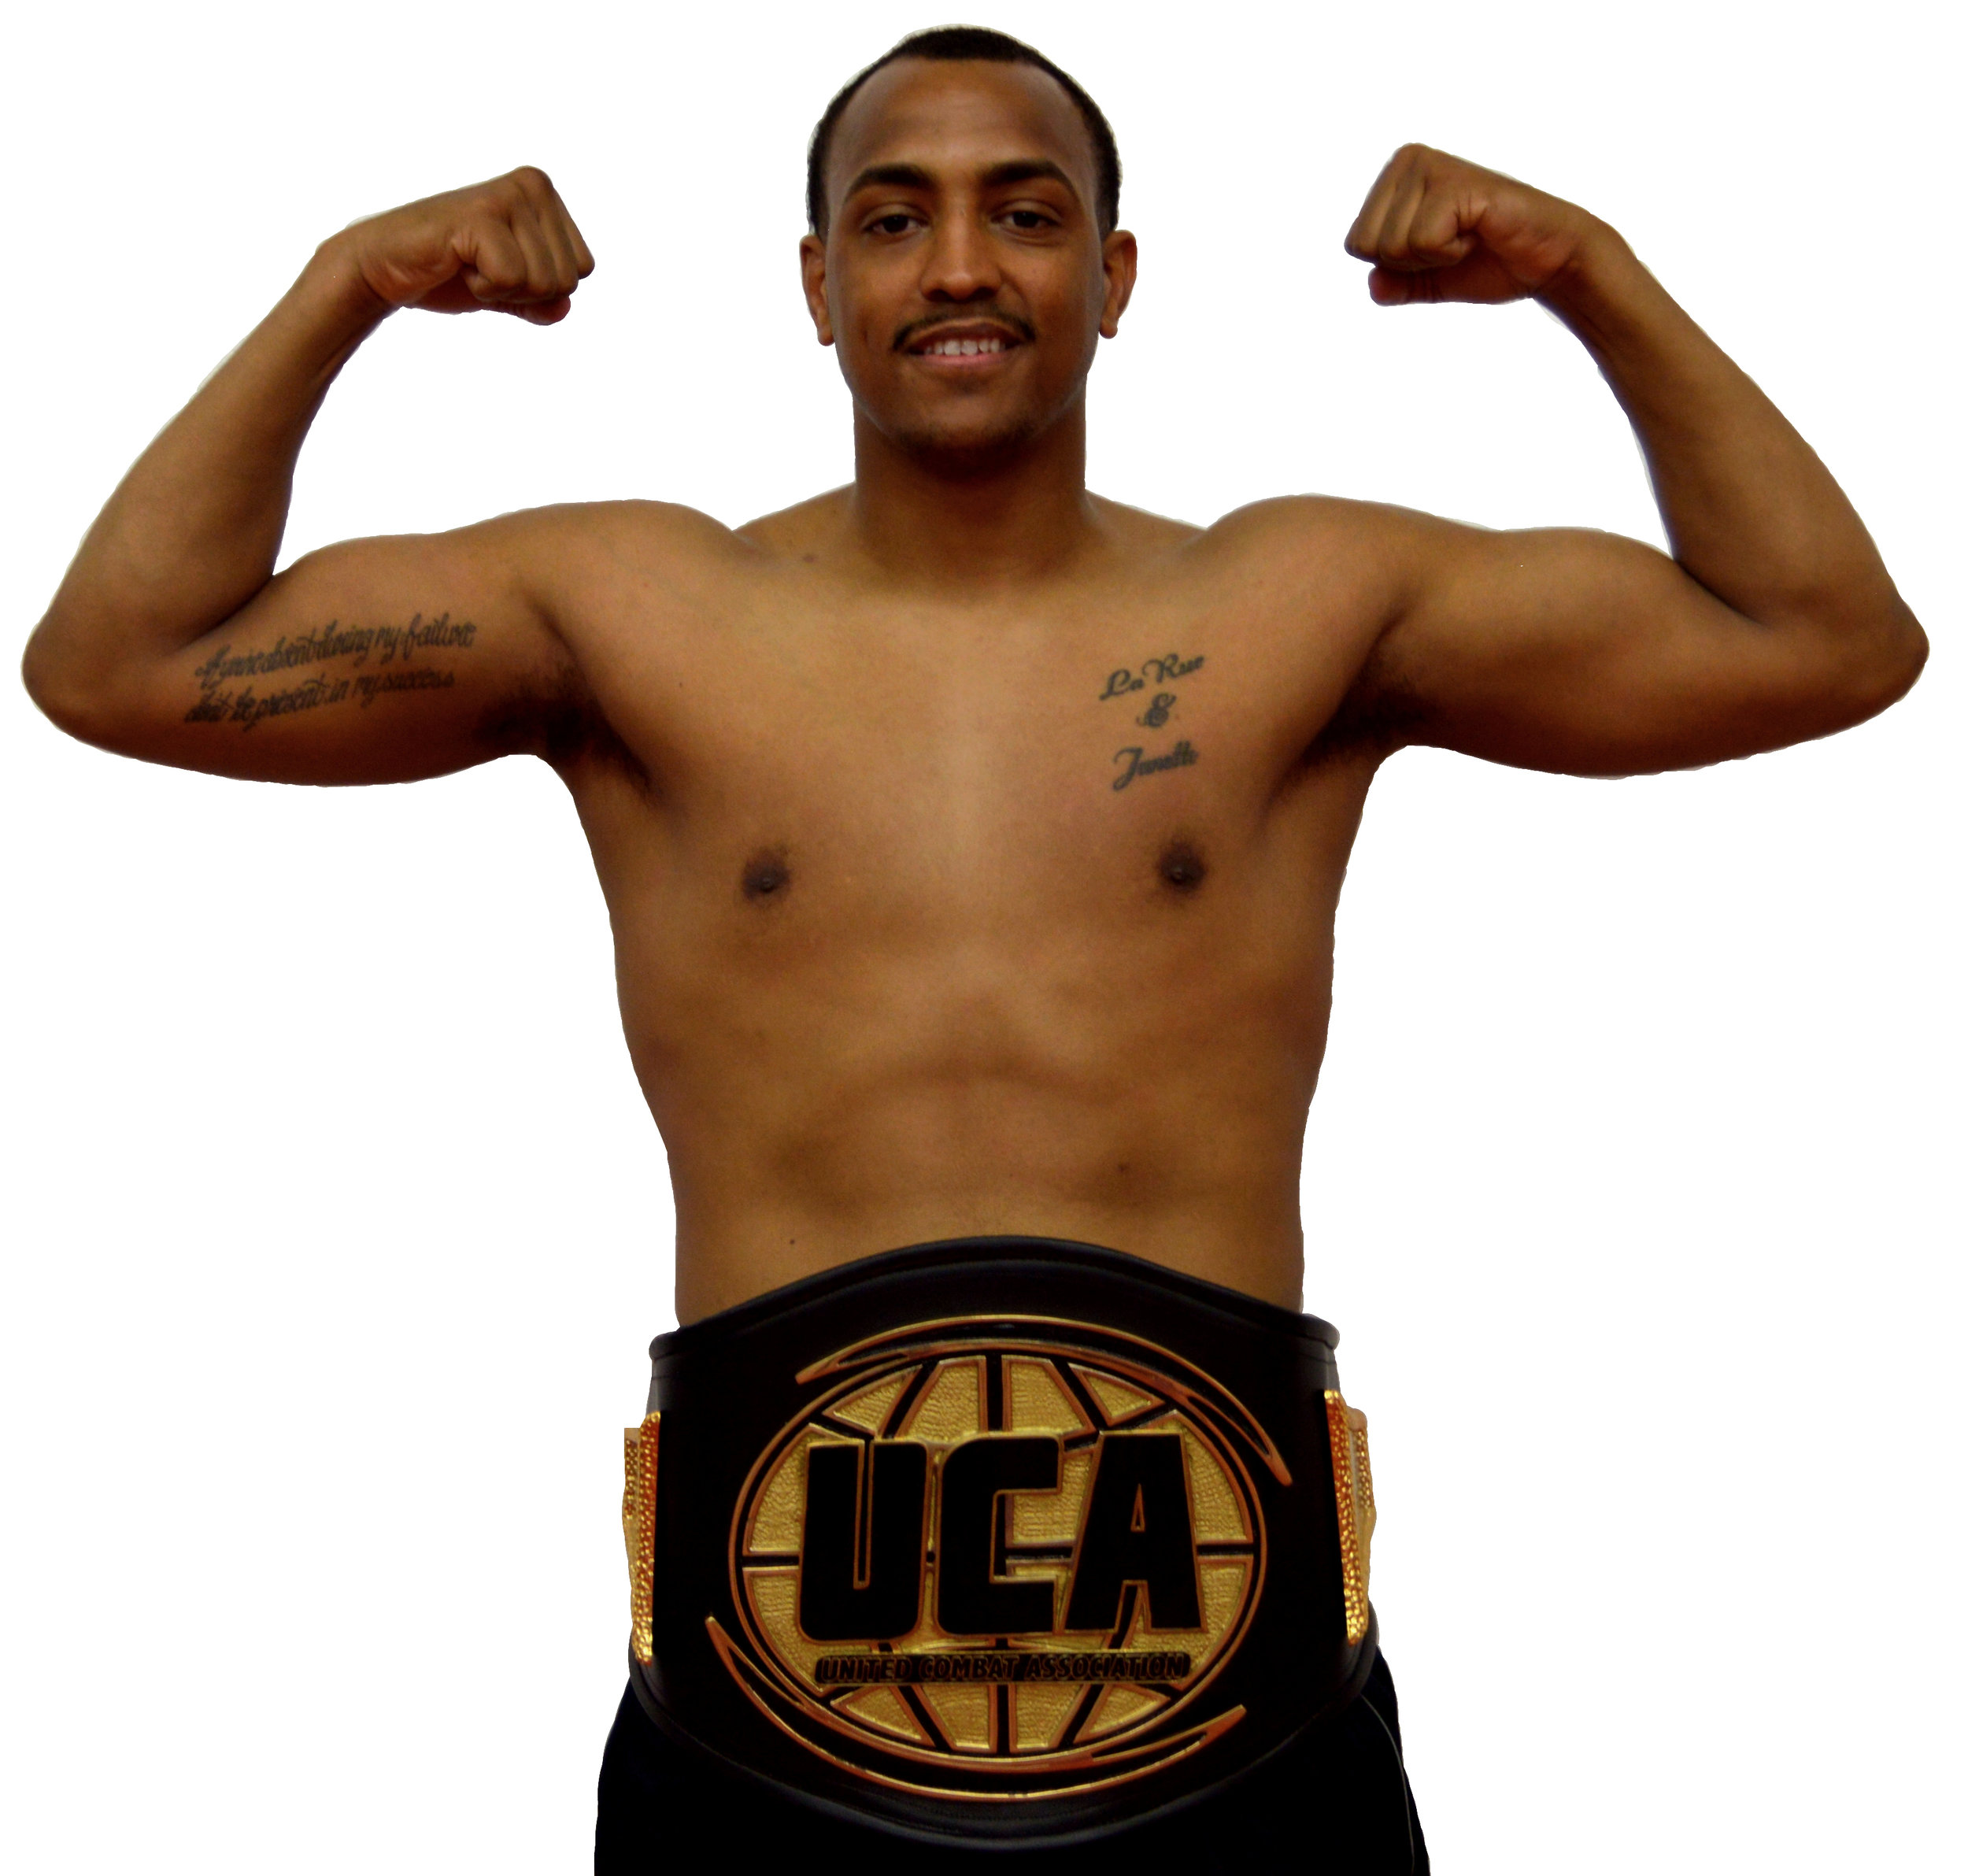 "Sterling ""Money"" Ingram   - Amateur Boxing & MMA Fighter  - 160lbs    - United Combat Association Super Middleweight Champion (Boxing - Obtained April 2019)    -  Undefeated  (Amateur Boxing & MMA)   -    Upcoming Bout:    559 Fights - MMA - Visalia, CA - TICKETS ON SALE"